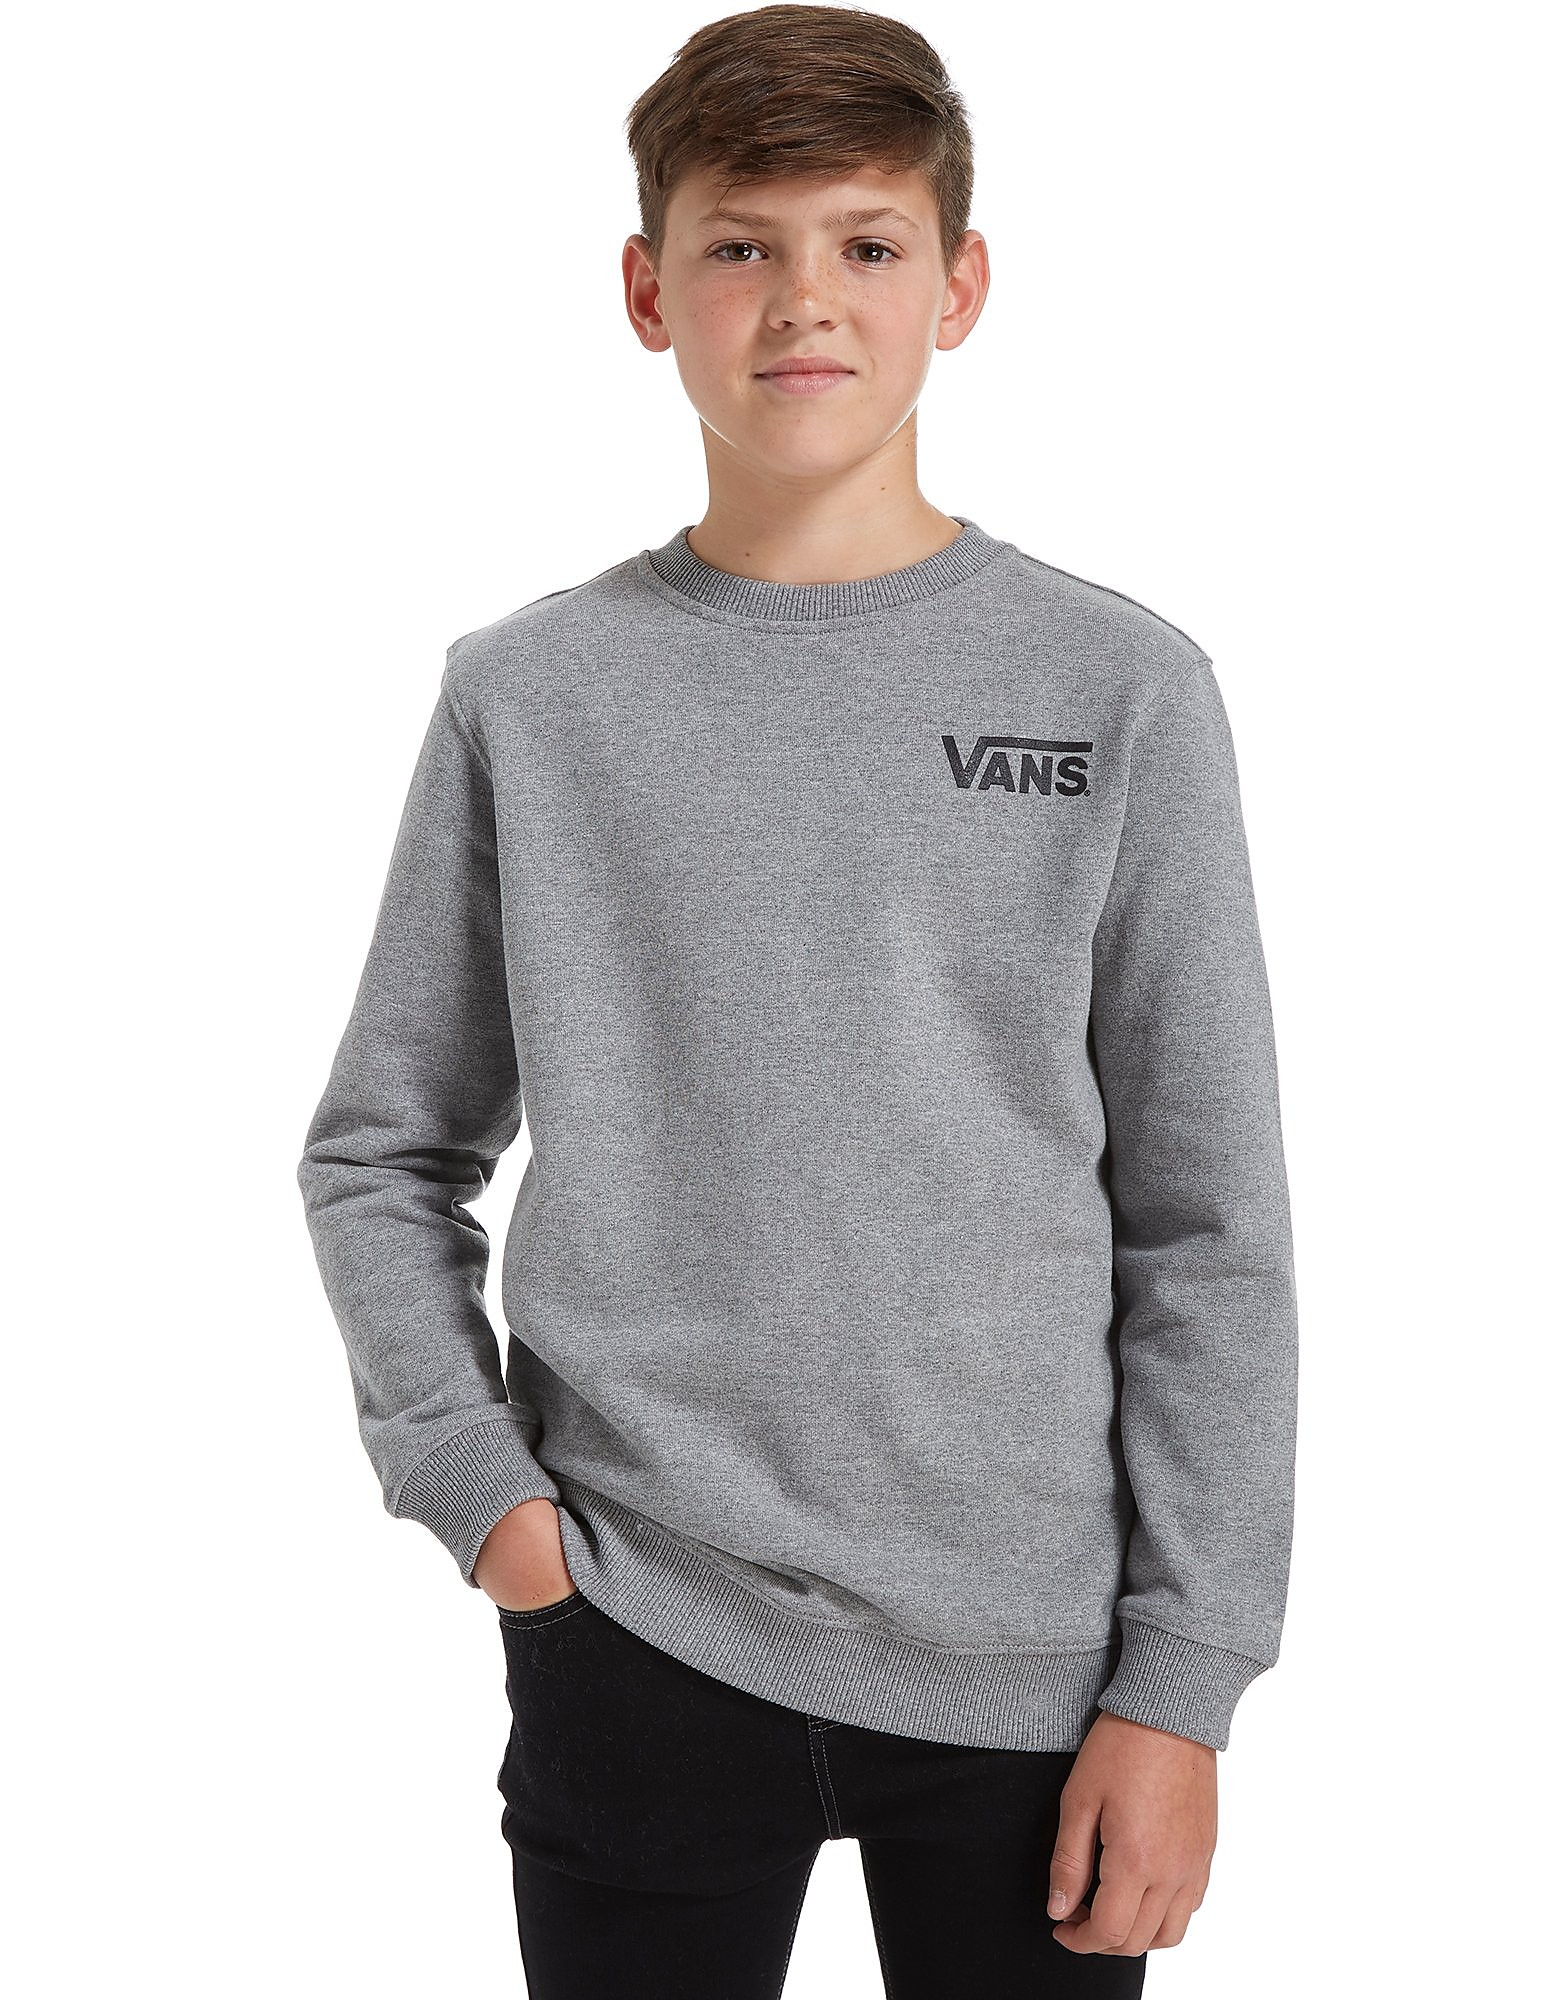 Vans Off The Wall Back Graphic Sweatshirt Junior